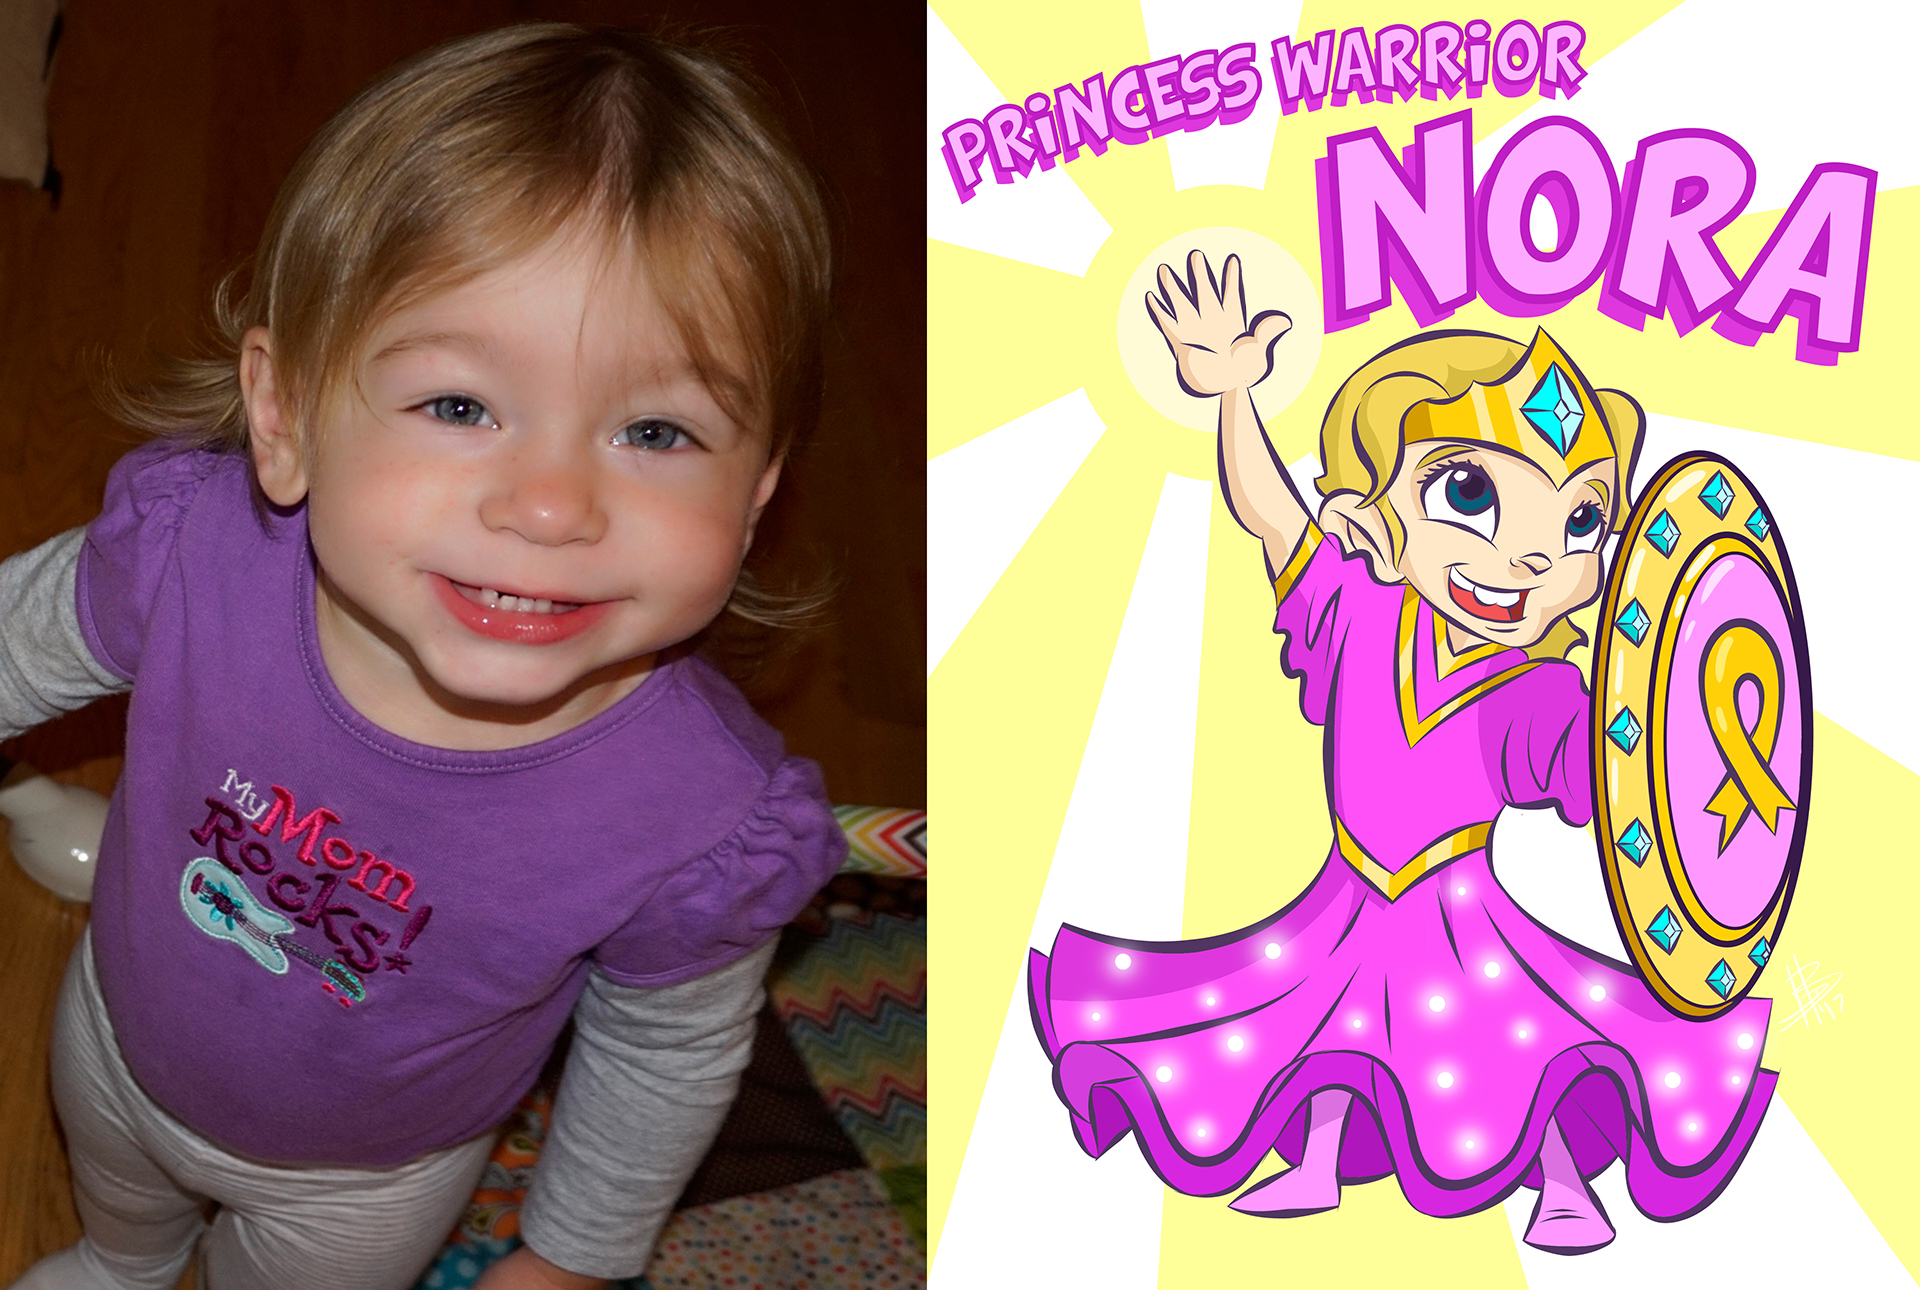 Nora (Princess Warrior Nora)